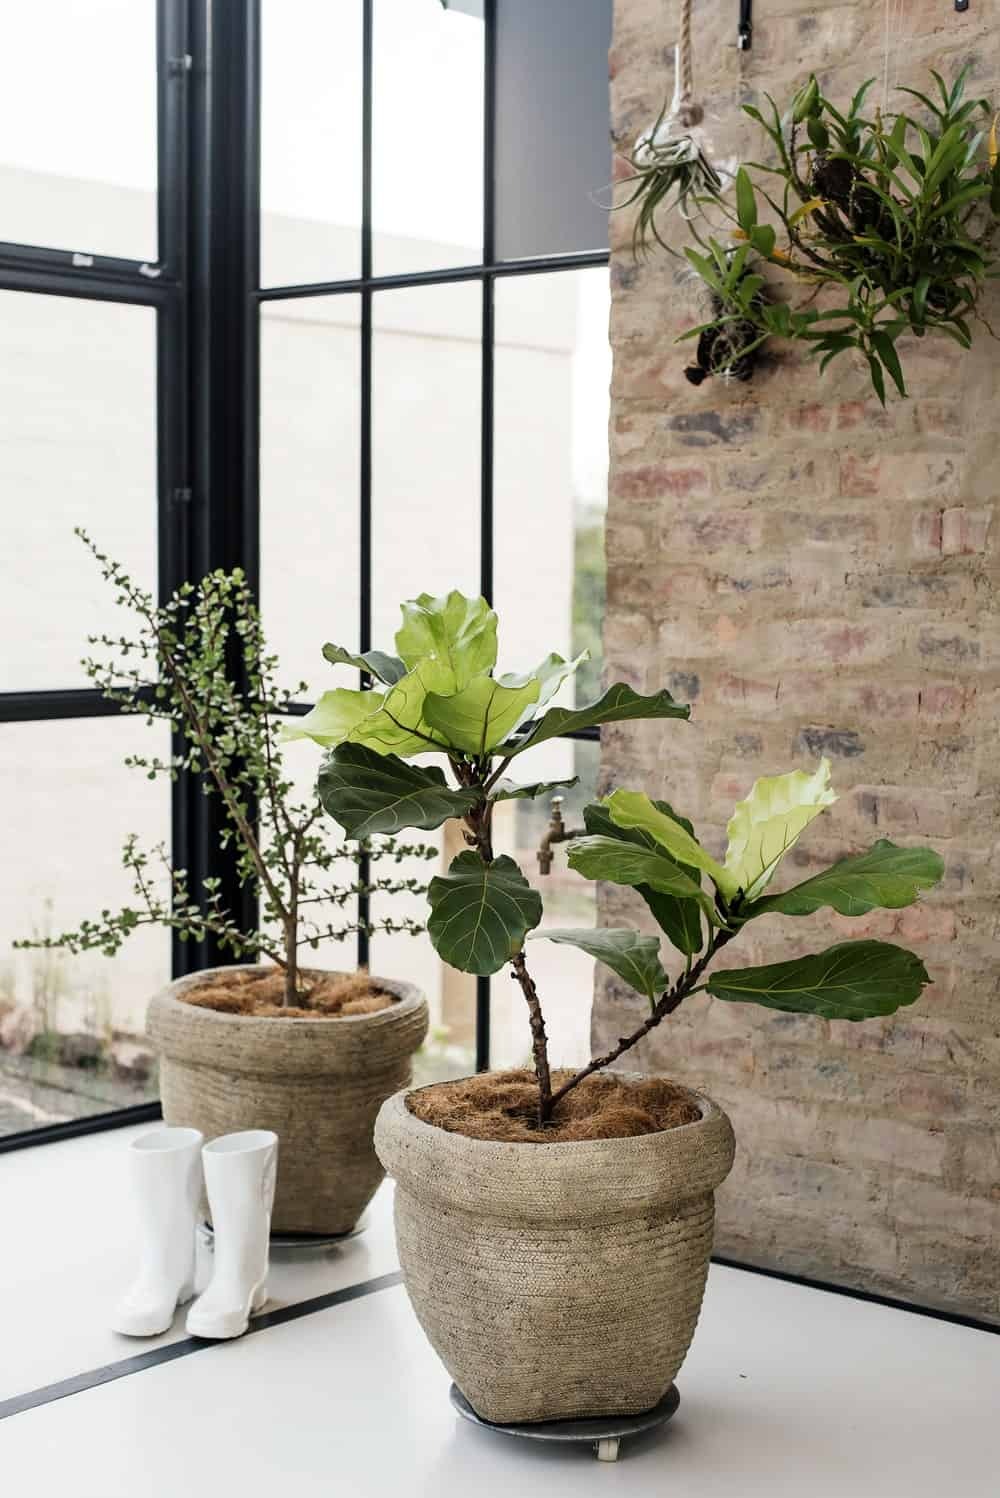 Fresh indoor plants in The Conservatory designed by Nadine Engelbrecht.